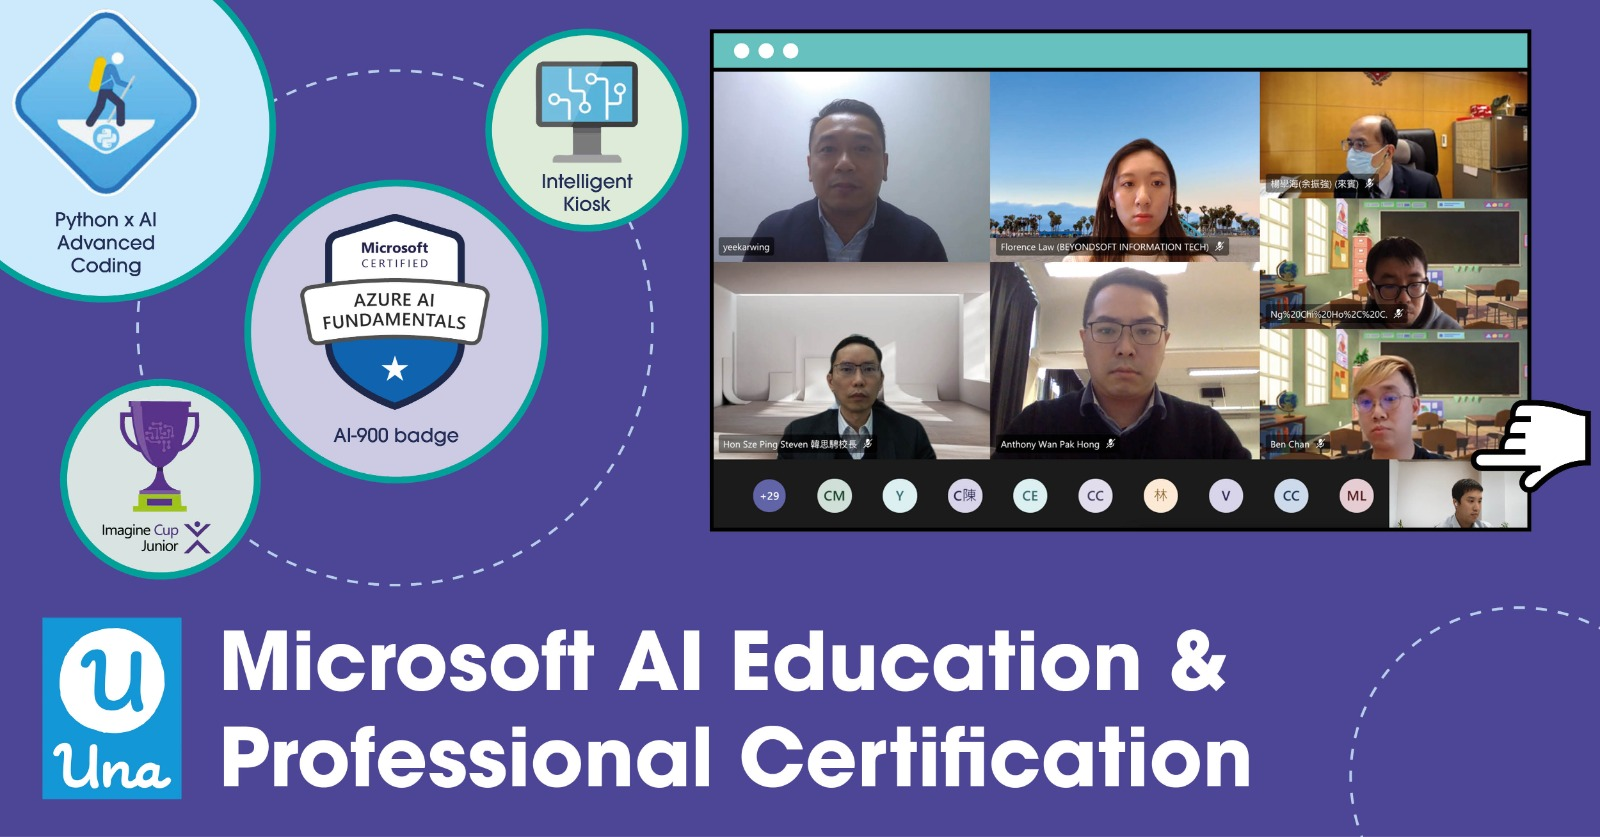 Una x Microsoft x CDSS – Sharing on Microsoft AI Education & Professional Certification